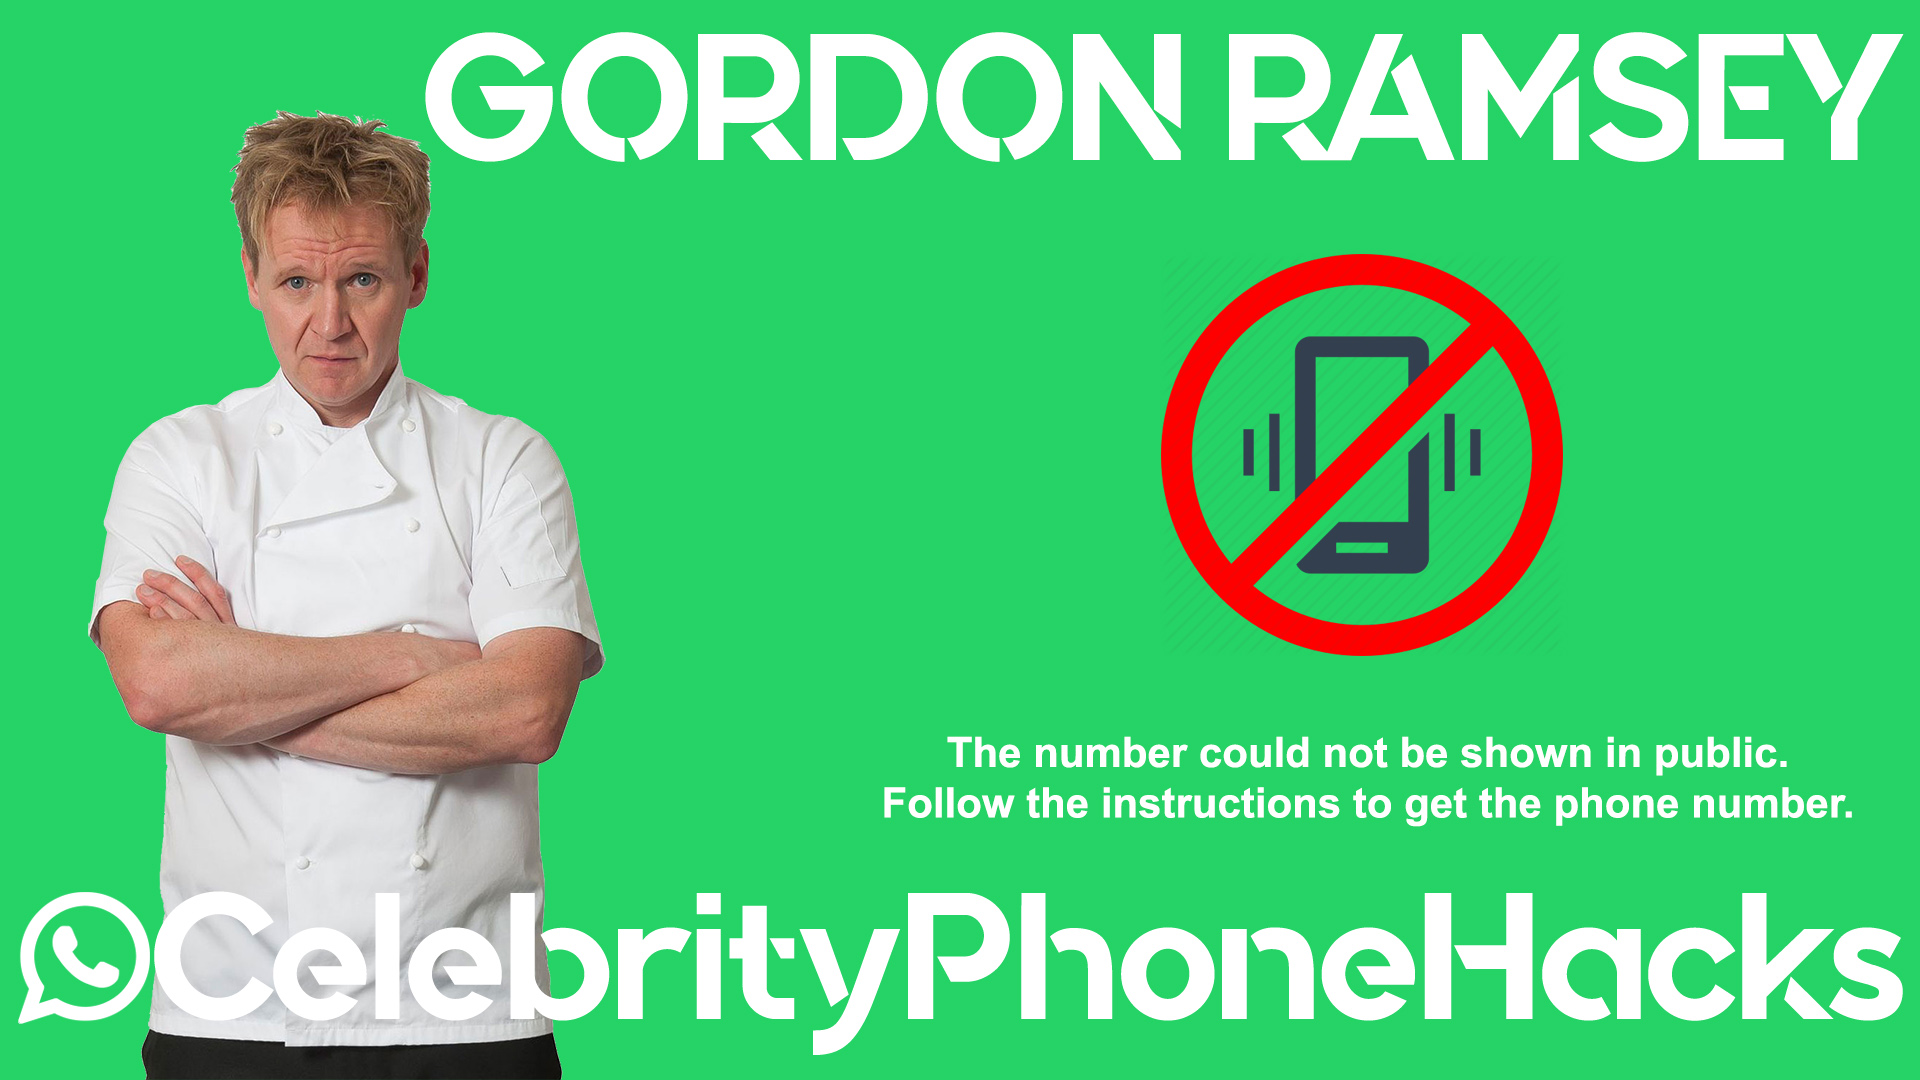 Gordon Ramsey real phone number 2019 whatsapp hacked leaked